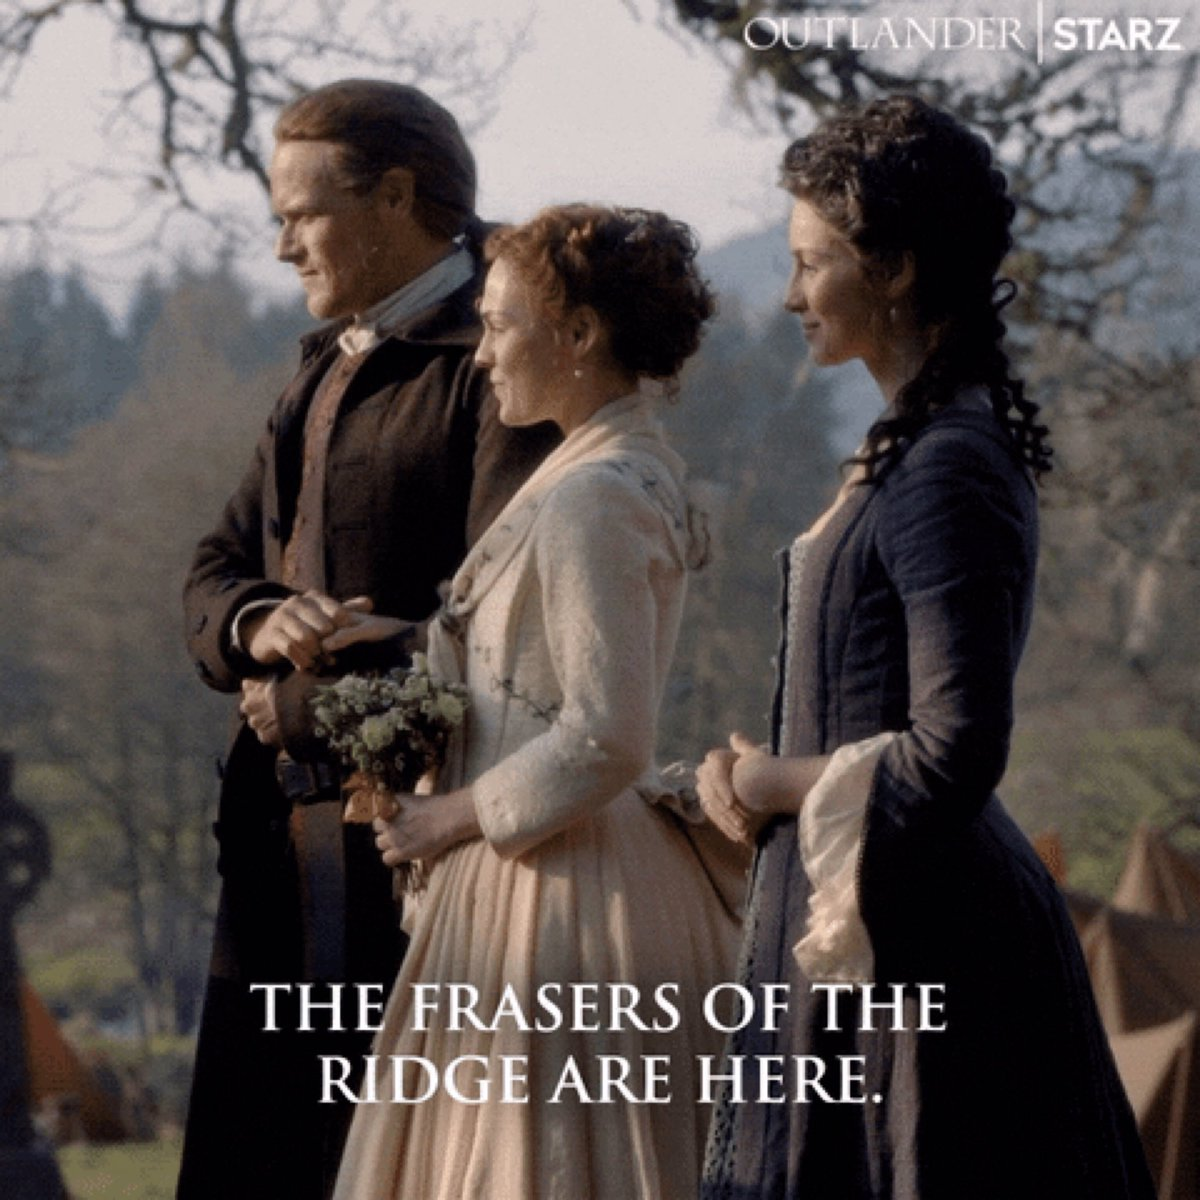 @w_network @MakkOlga OHHH... how many can I post? ... practically the whole #OutlanderS5   I would start with the Fraser force in the new settlement and the return of the Laird and his Lady, and the return to origins and kilt